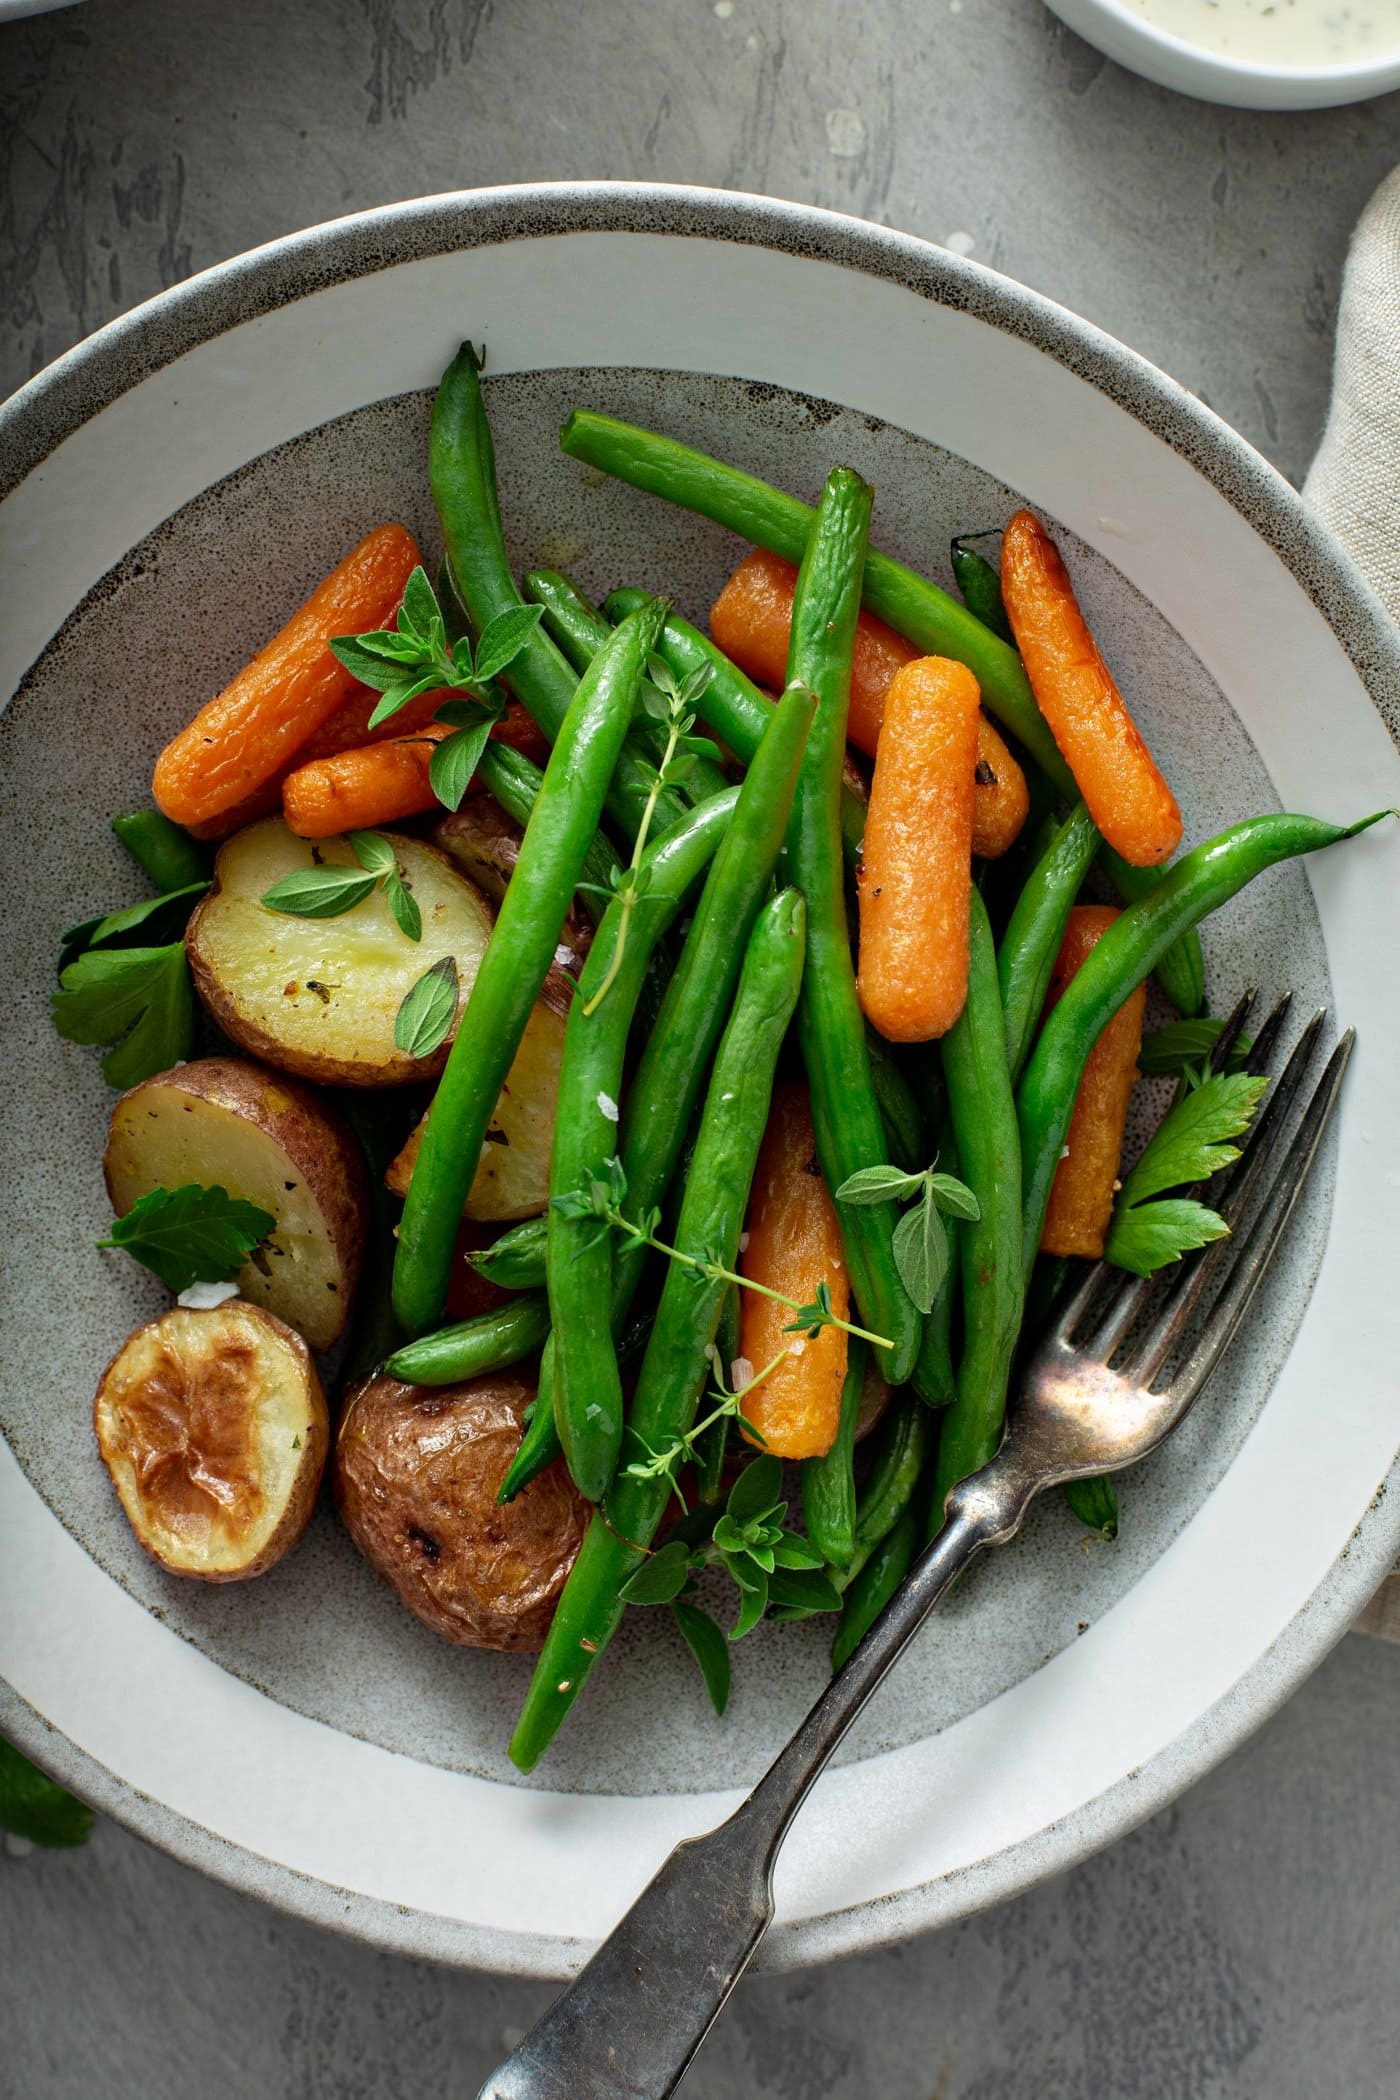 A dinner plate with roasted potatoes, carrots, and green beans. The vegetables are sprinkled with fresh herbs and a fork is resting on the plate next to the vegetables.